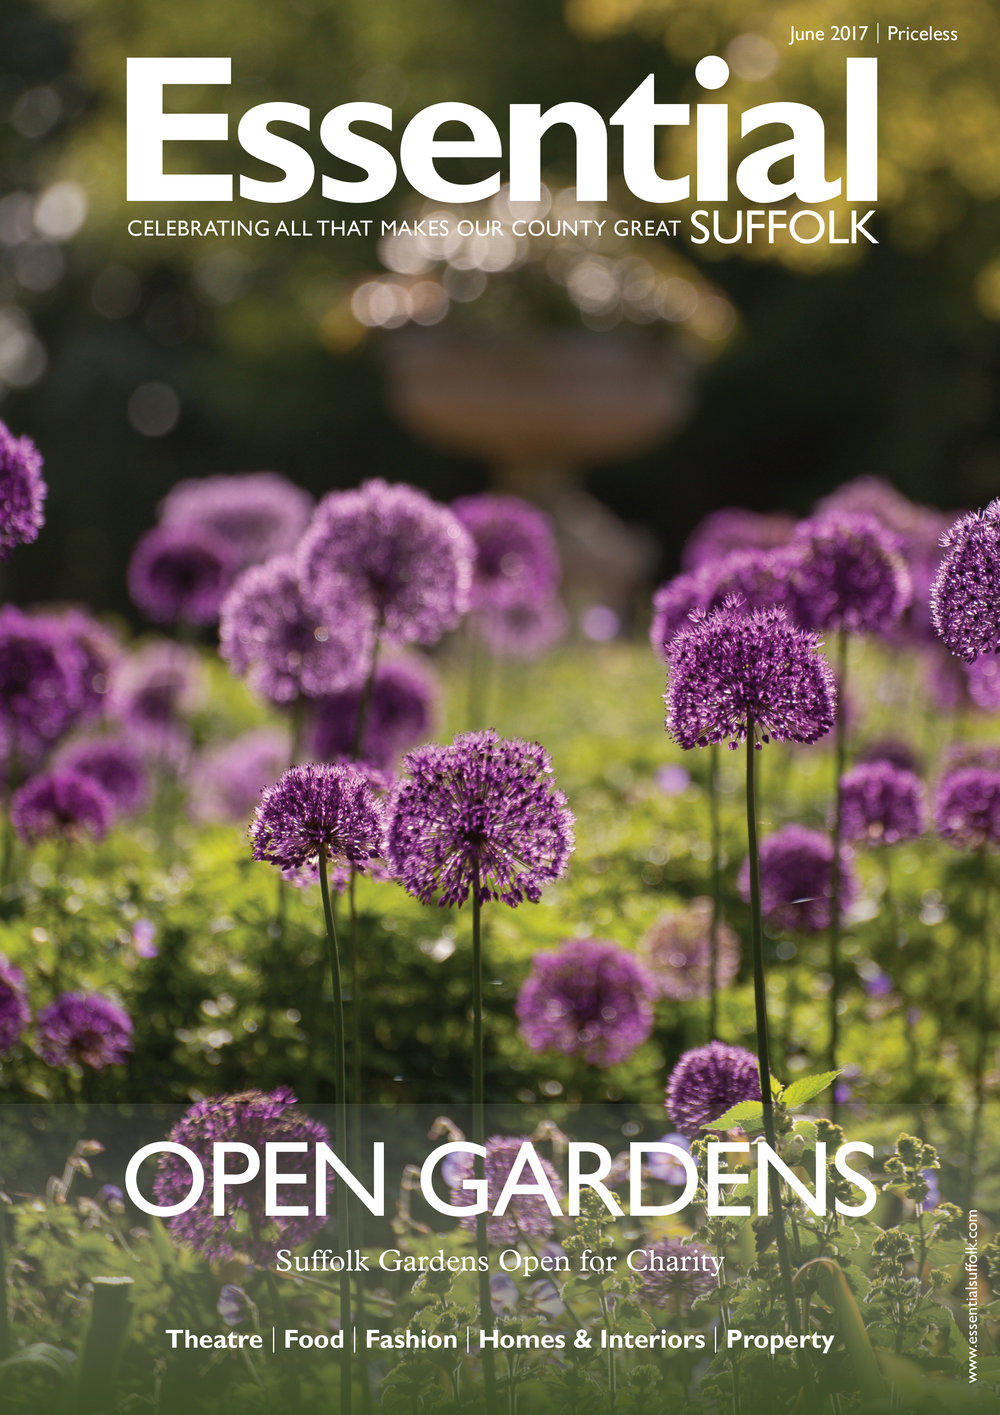 Essential Suffolk June 2017